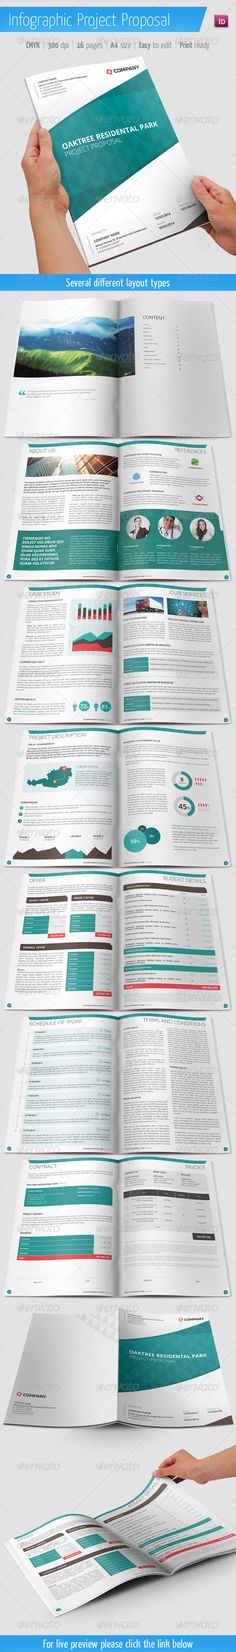 Project & Business Proposal Template | Download: Http